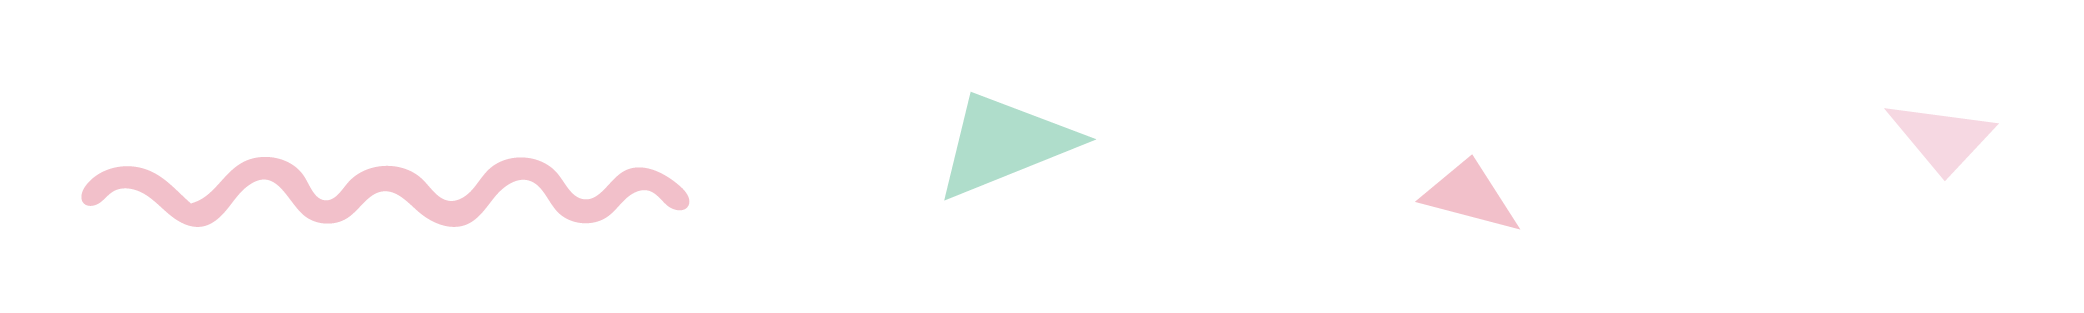 dividers-04.png